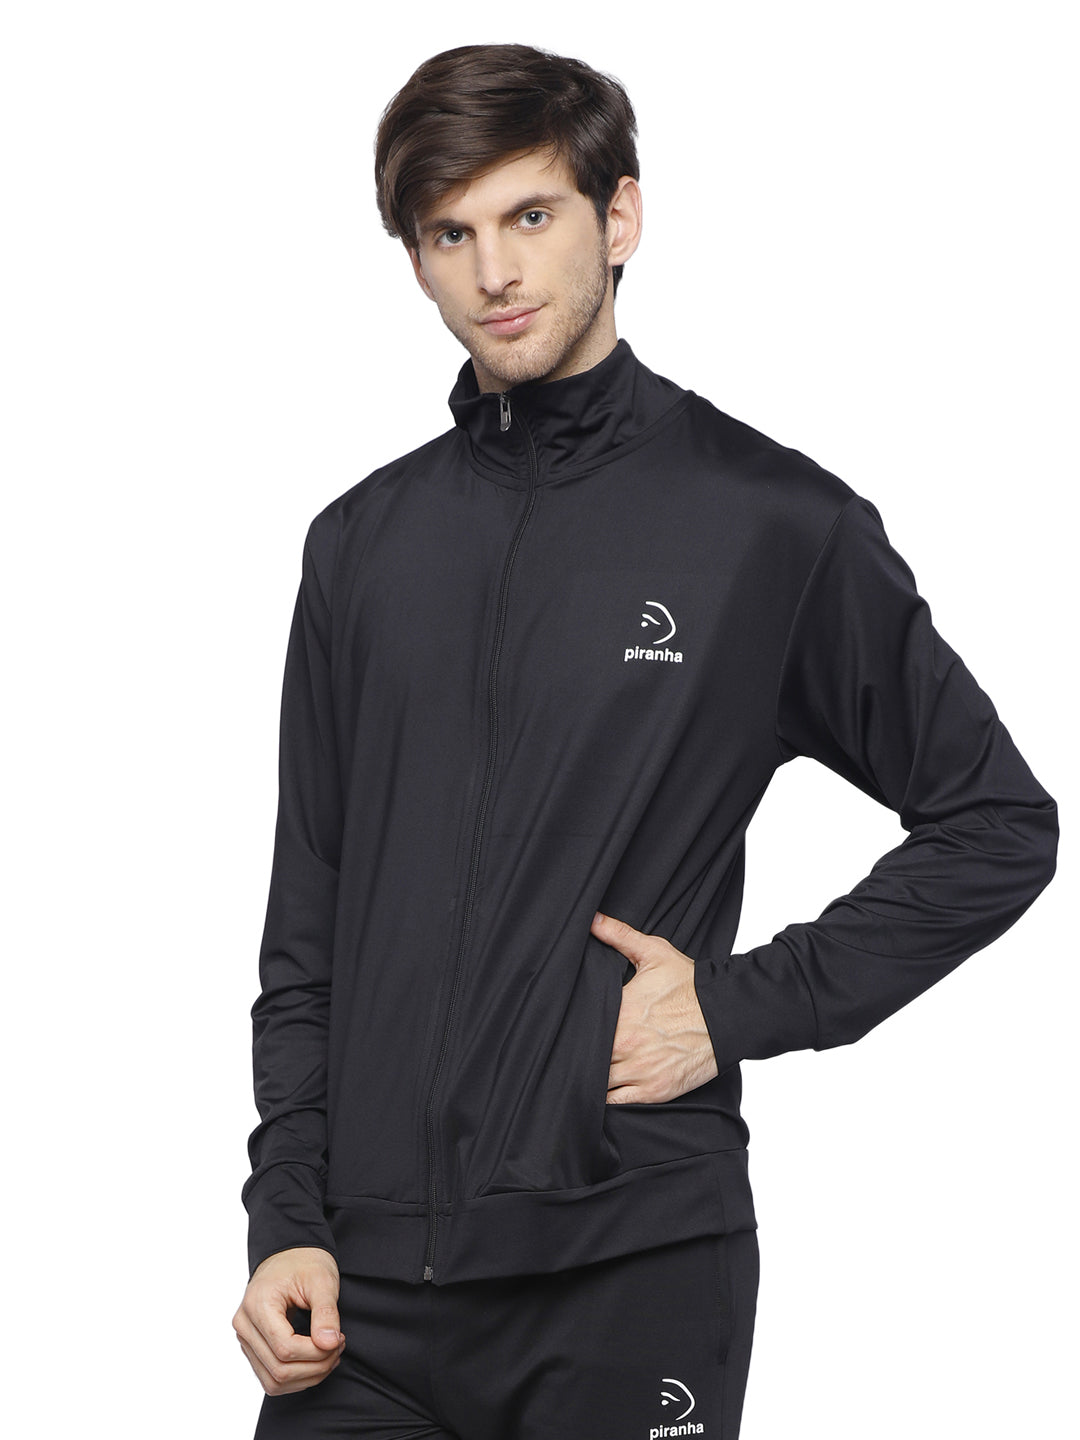 Piranha Men's Black Track Jacket - MTJ323